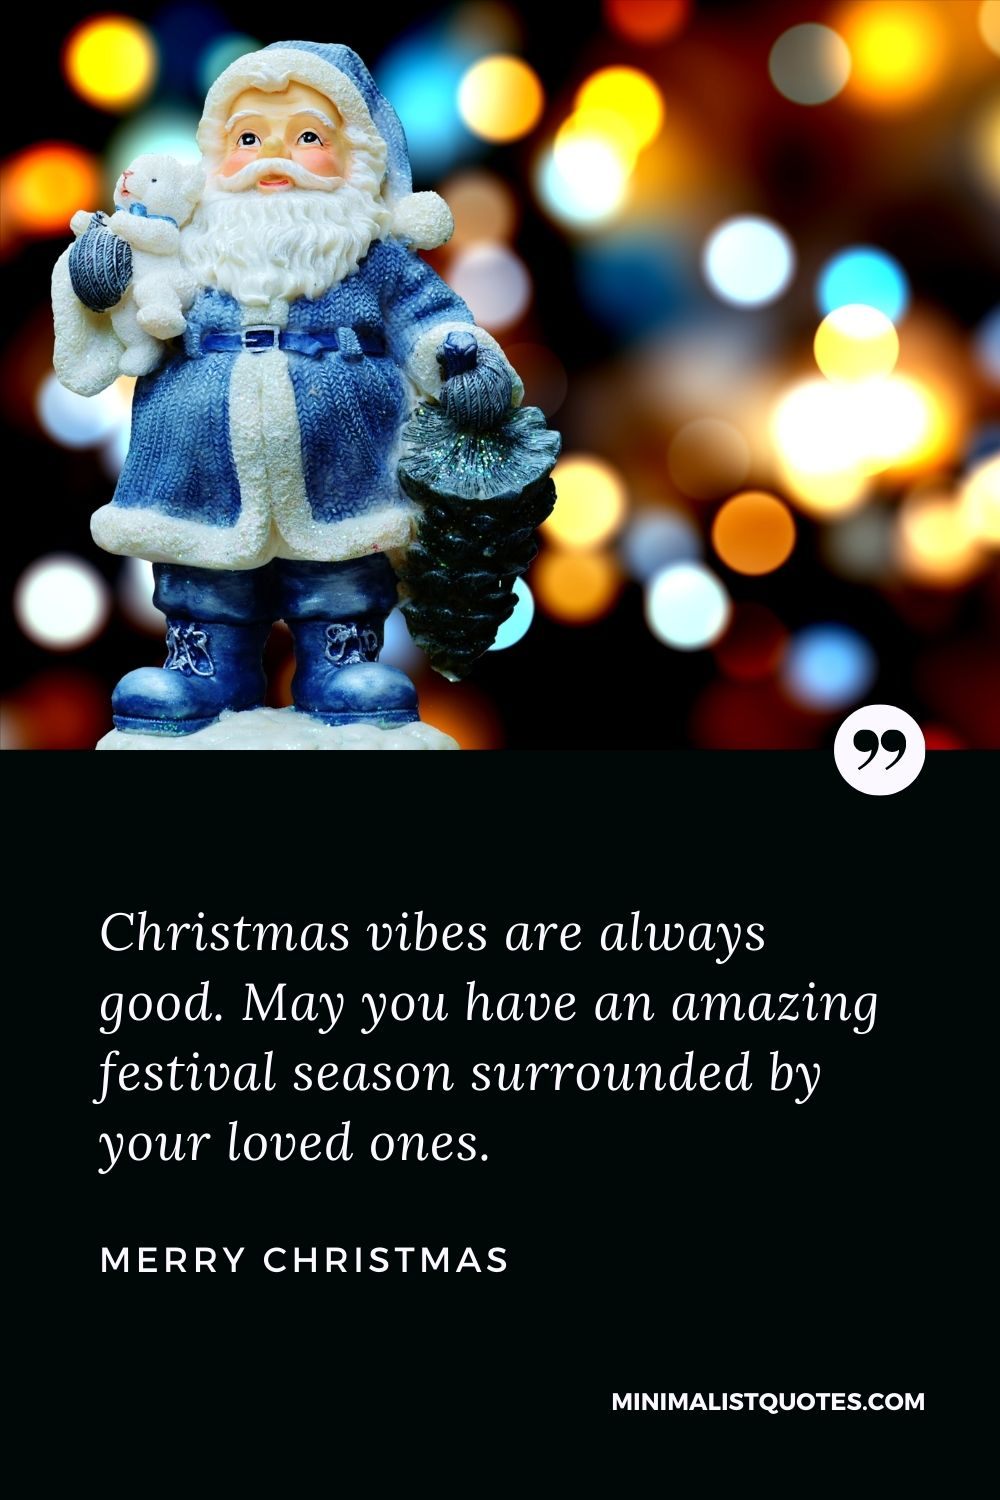 Merry Christmas Wish - Christmas vibes are always good. May you have an amazing festival season surroundedby your loved ones.